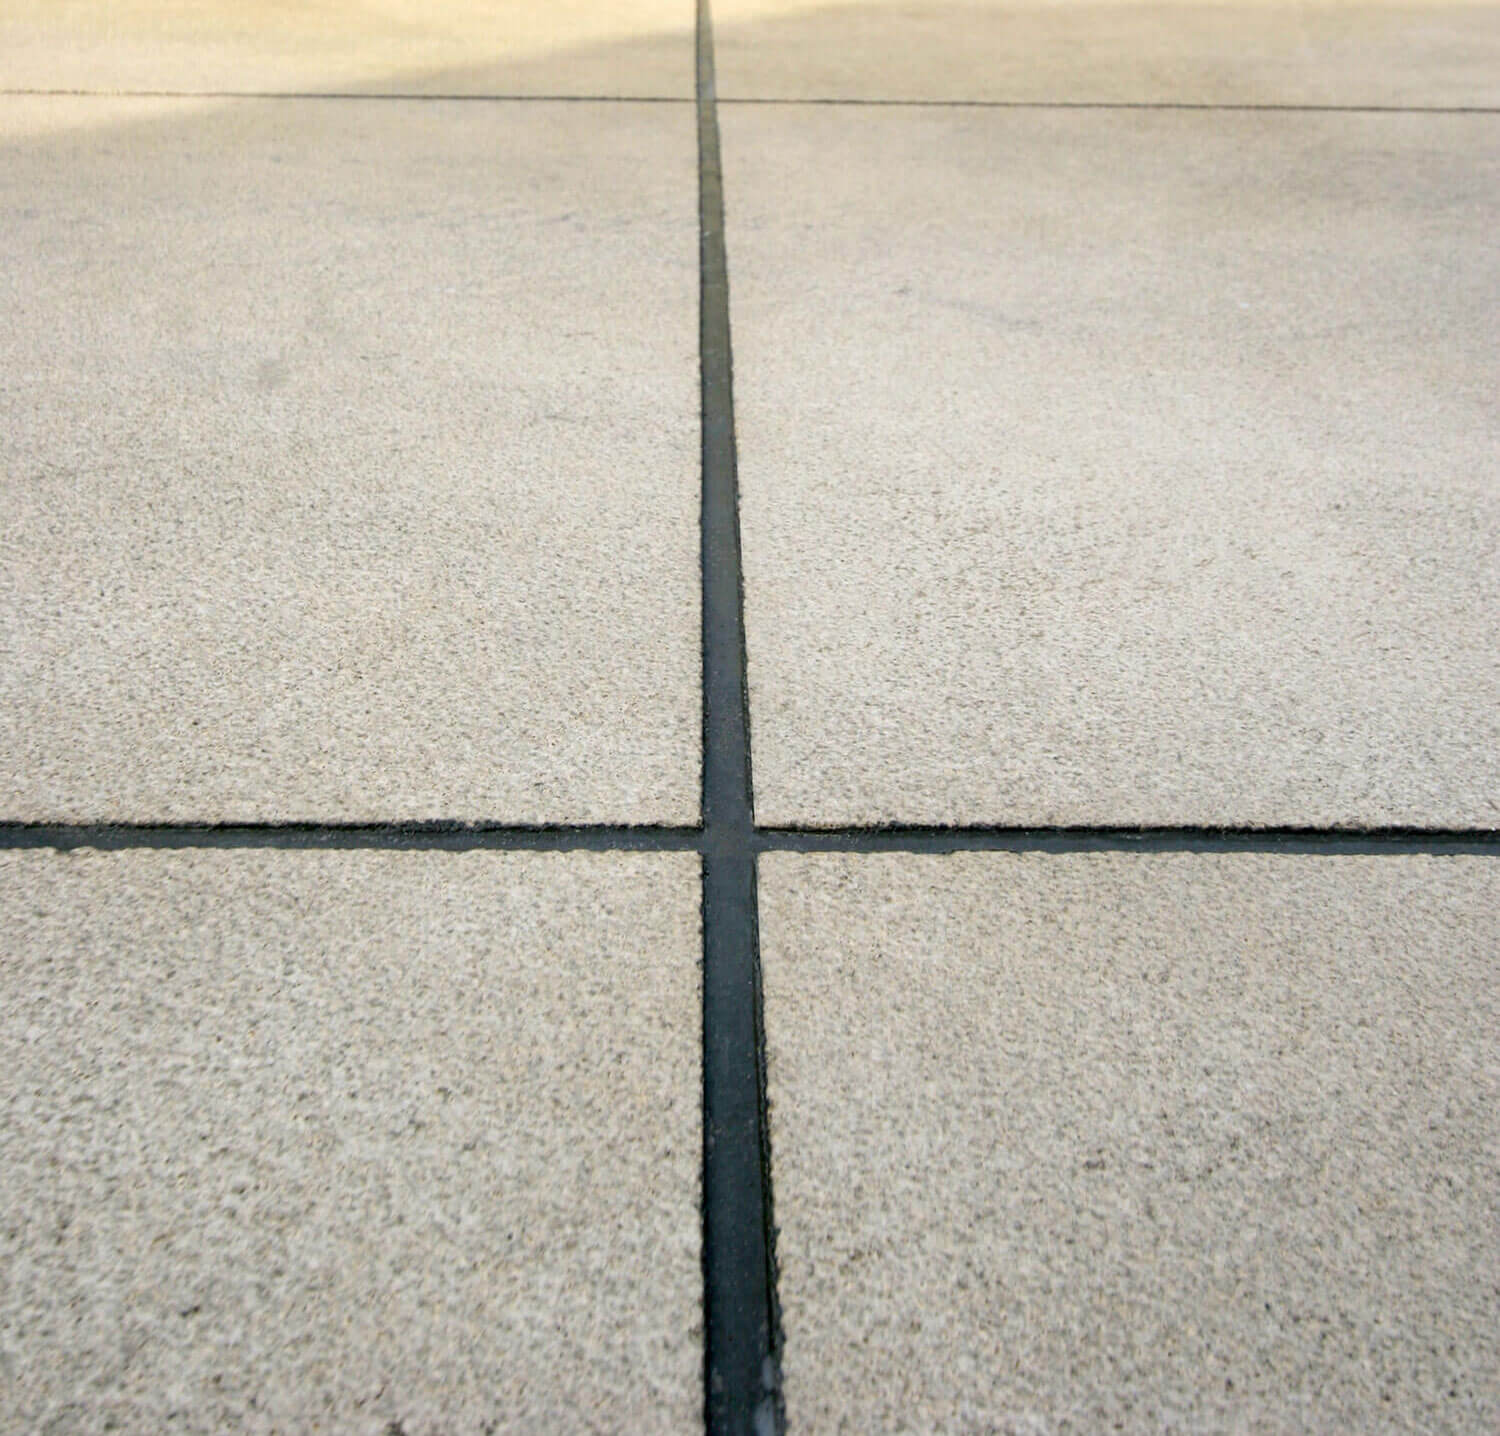 decorative concrete cuts filled with grout.